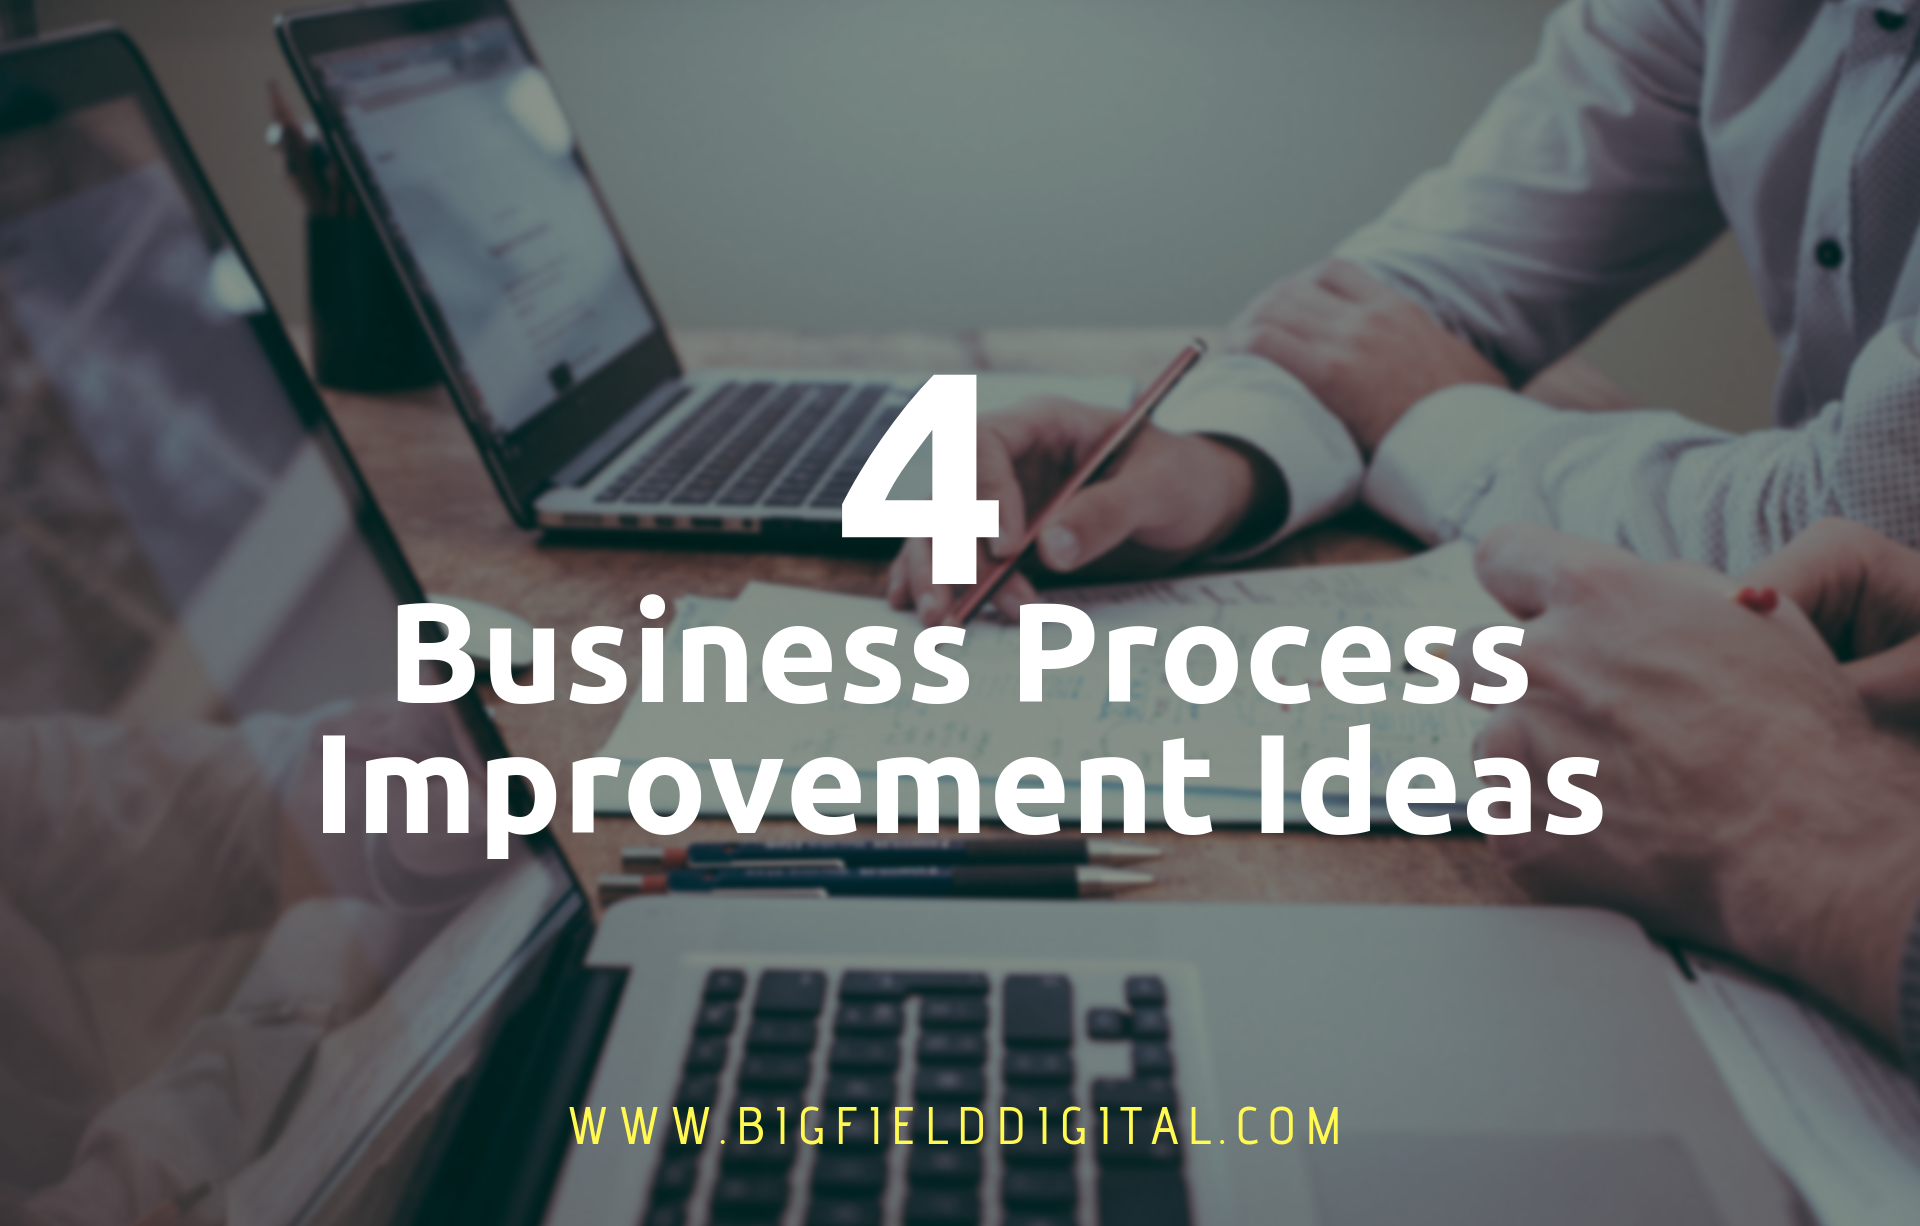 4 Business Process Improvement Ideas